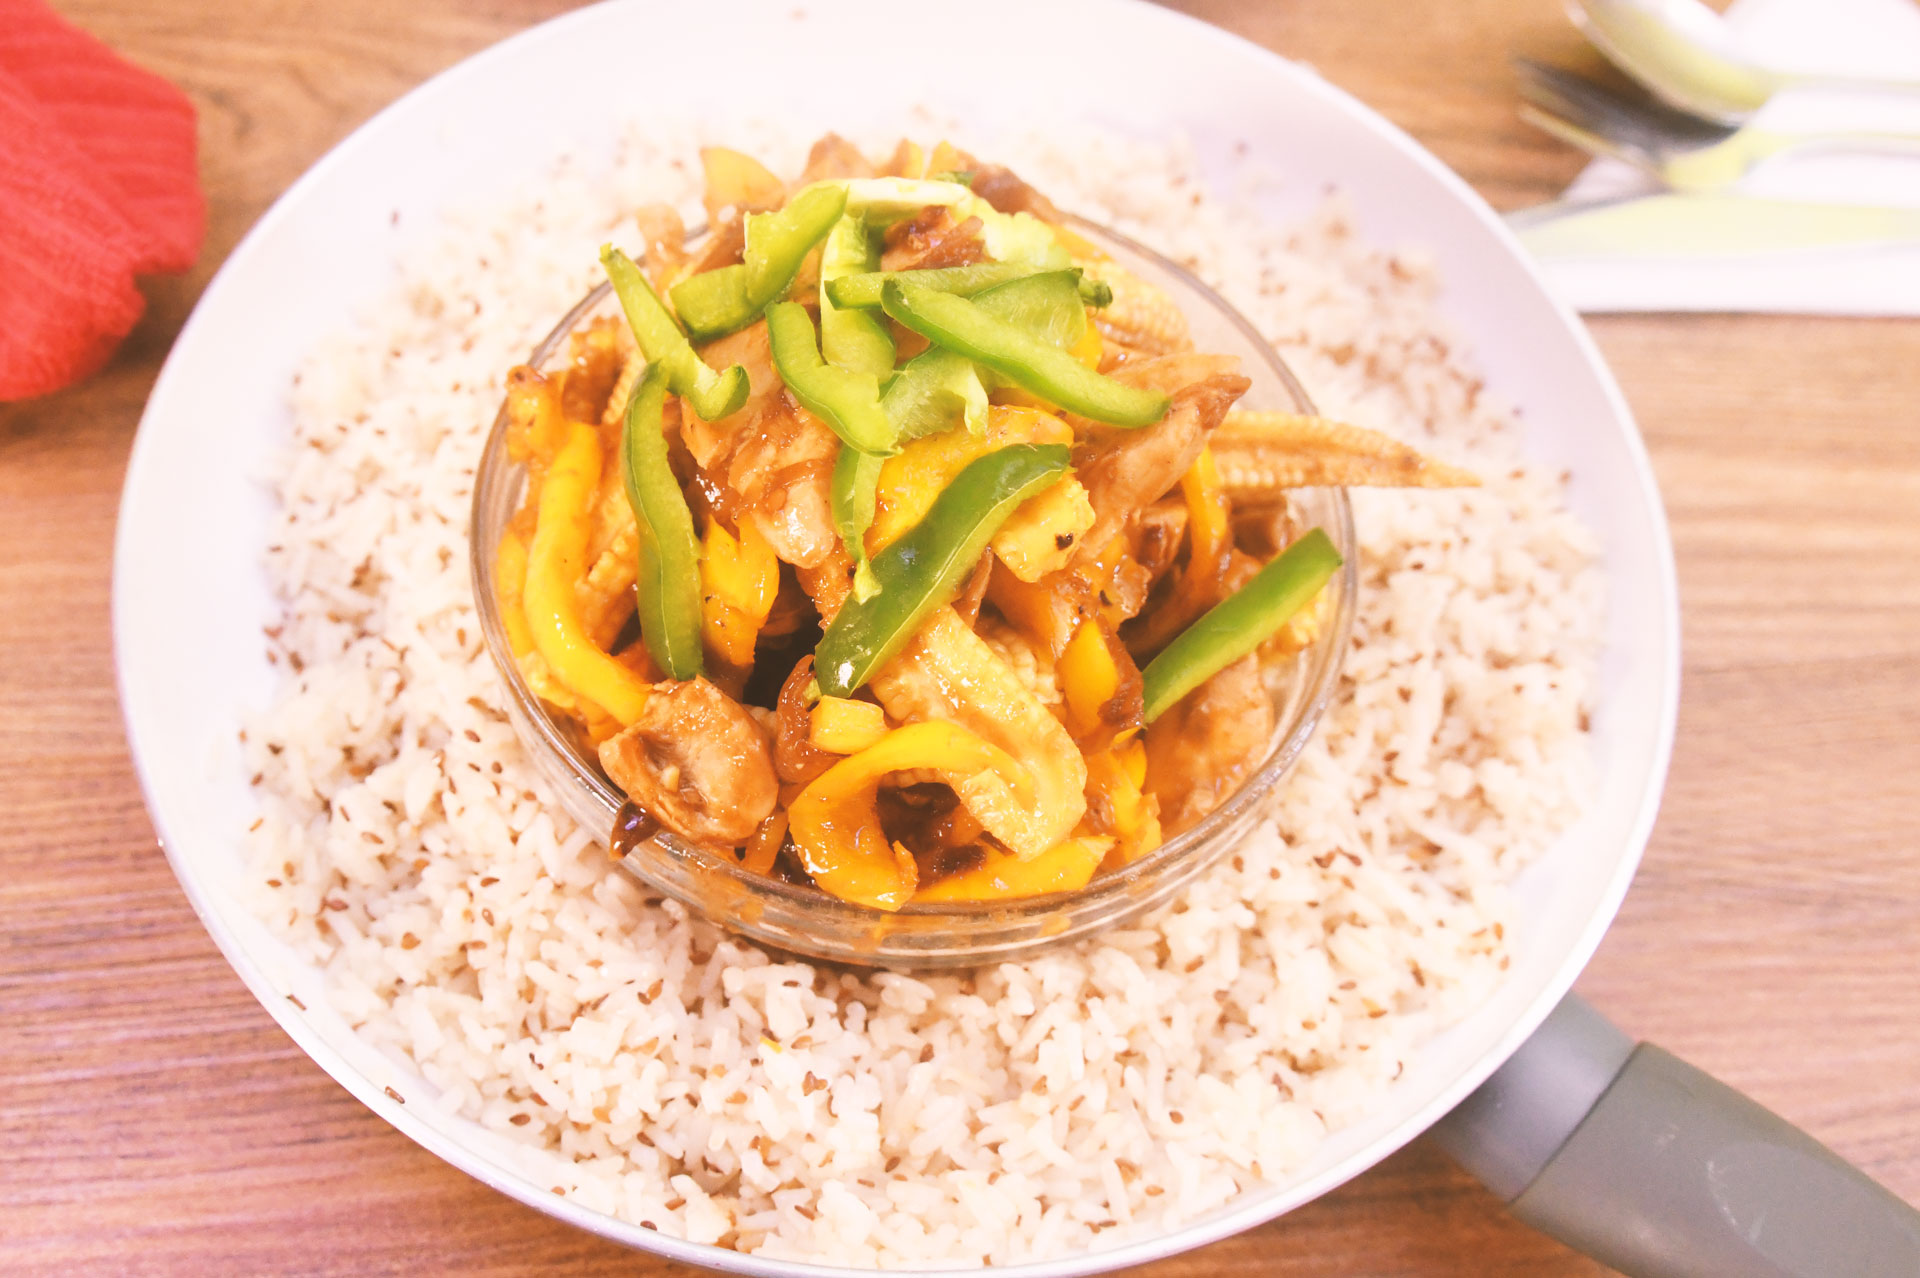 Stir-fry Chicken & Sesame rice